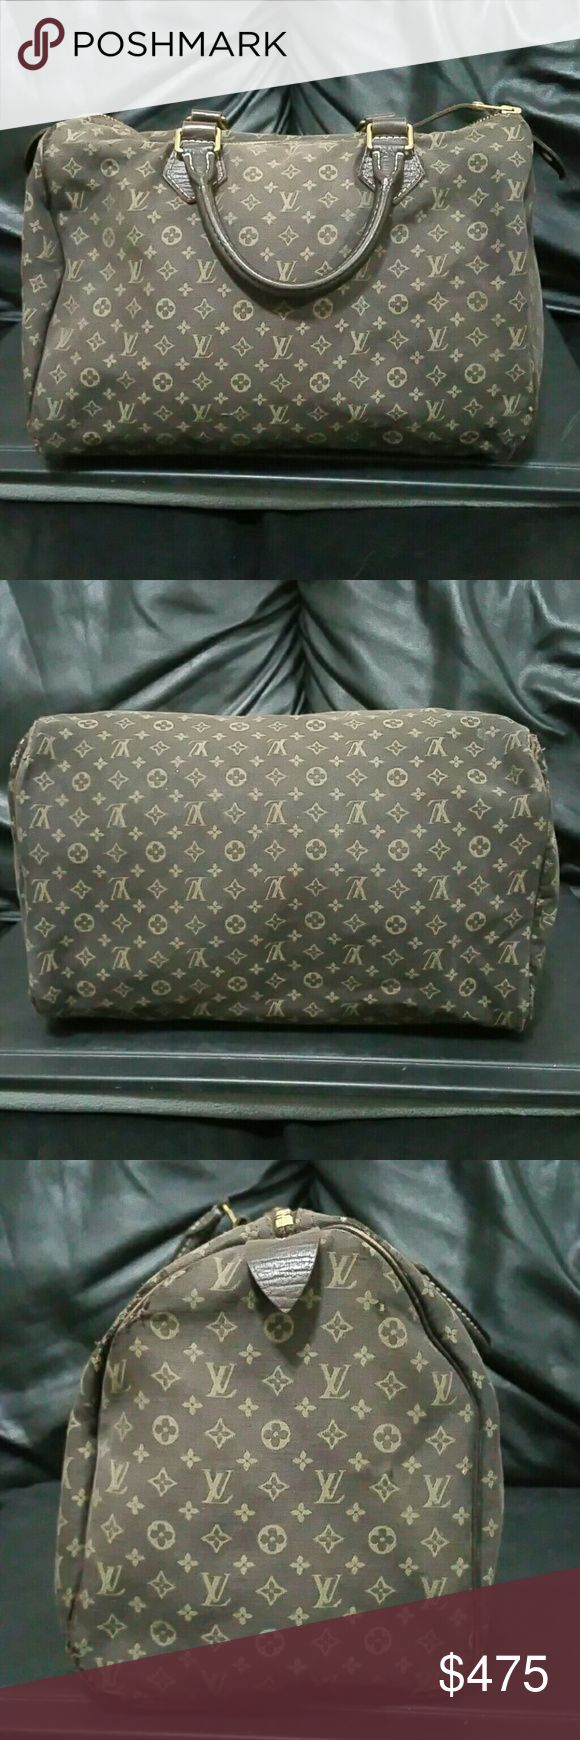 Louis Vuitton Mini Lin Speedy 30 In heavily used condition with LOTS of life left. Corners were frayed and I took them in and sewed them up. Interior has glitter markings/stain. No smells or rips or holes.   Selective trades only (Gold Jewelry, Diamonds other high end luxury purses) Partials are highly recommended (cash + shoes/clothing/other purses) No trade values accepted (listing prices only) No trade feedback...YOU ship first. Louis Vuitton Bags Satchels